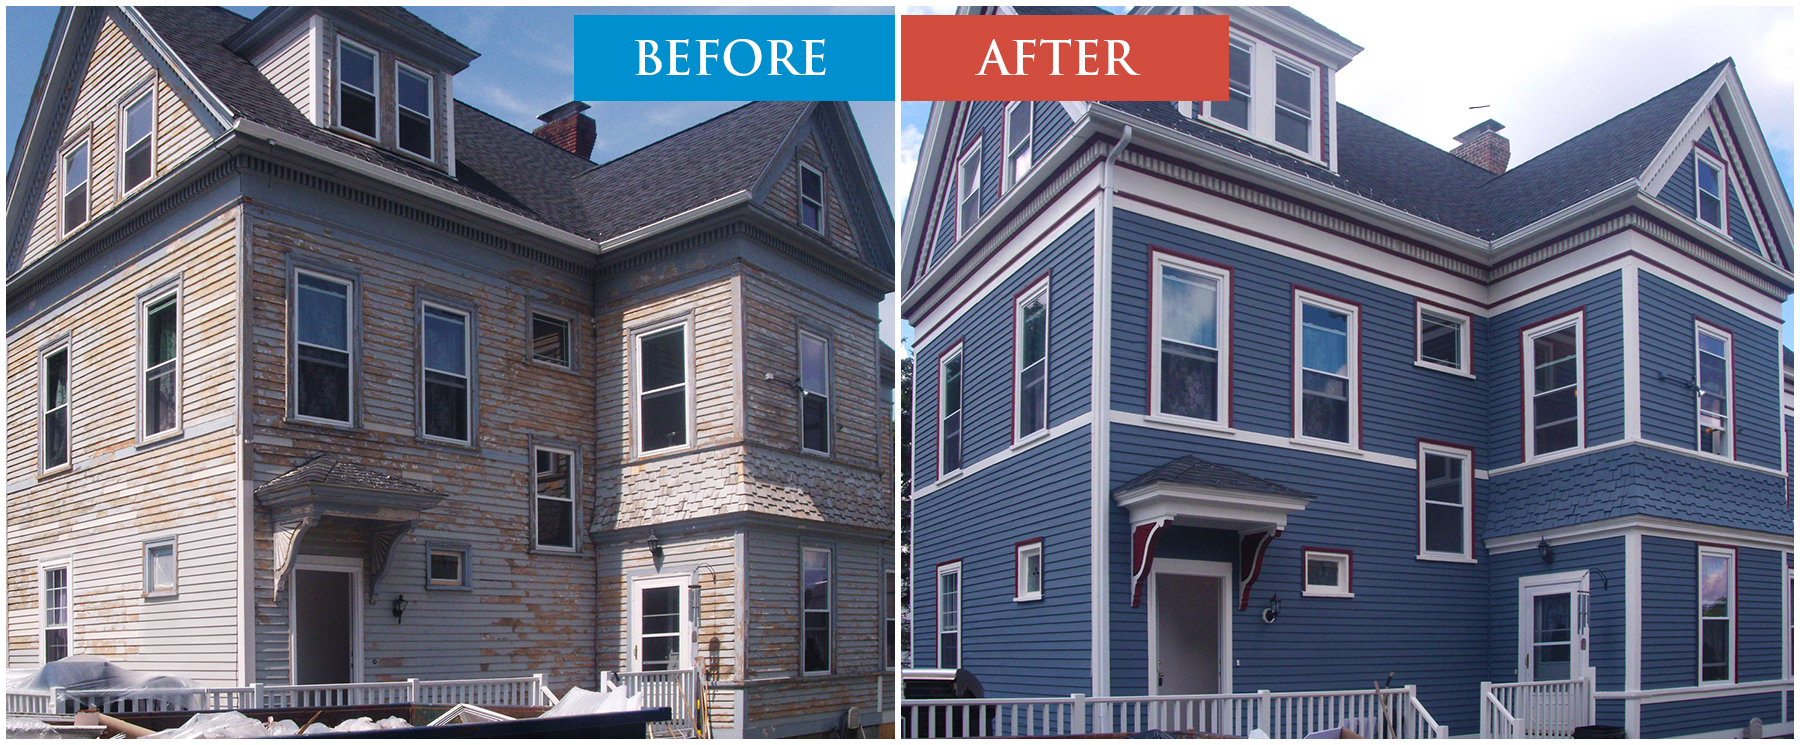 House Painting Serbices, Before After.